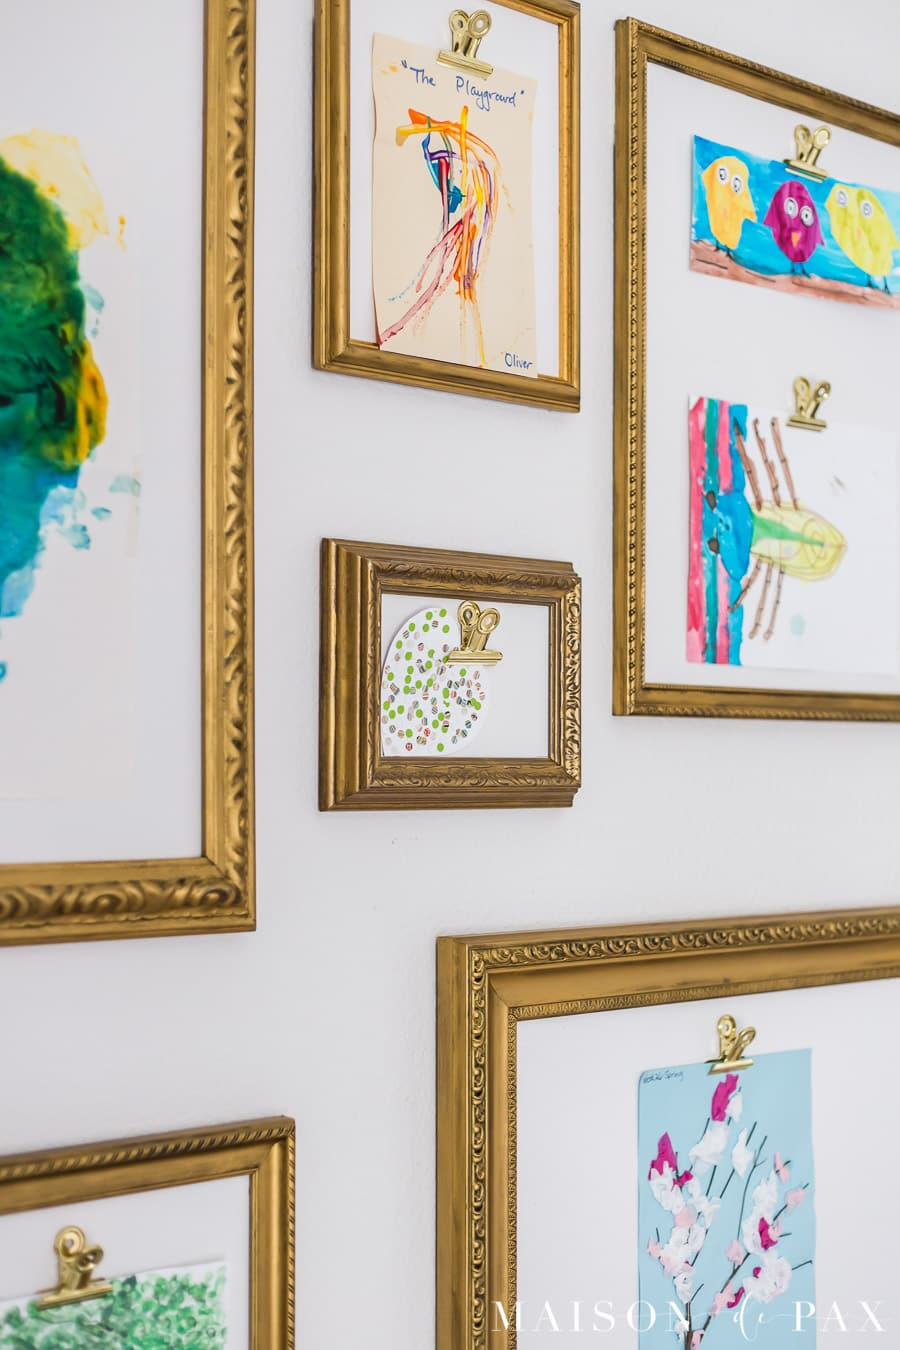 large gold clips hold children's artwork for display | Maison de Pax